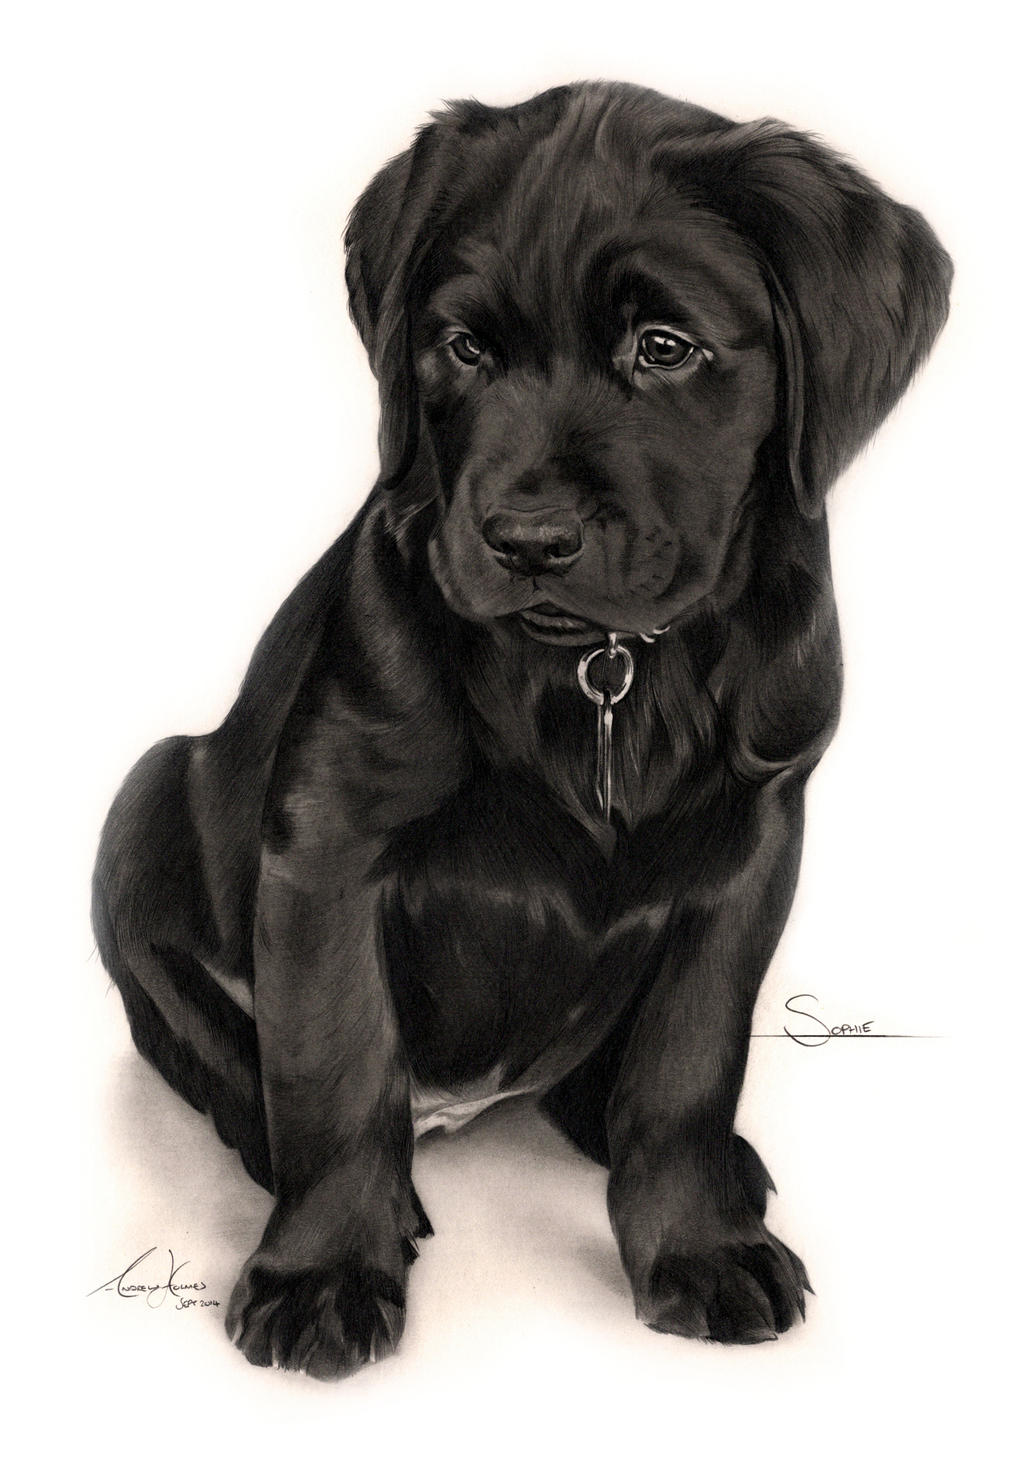 Commission - Black Labrador Puppy U0026#39;Sophieu0026#39; By Captured-In-Pencil On DeviantArt